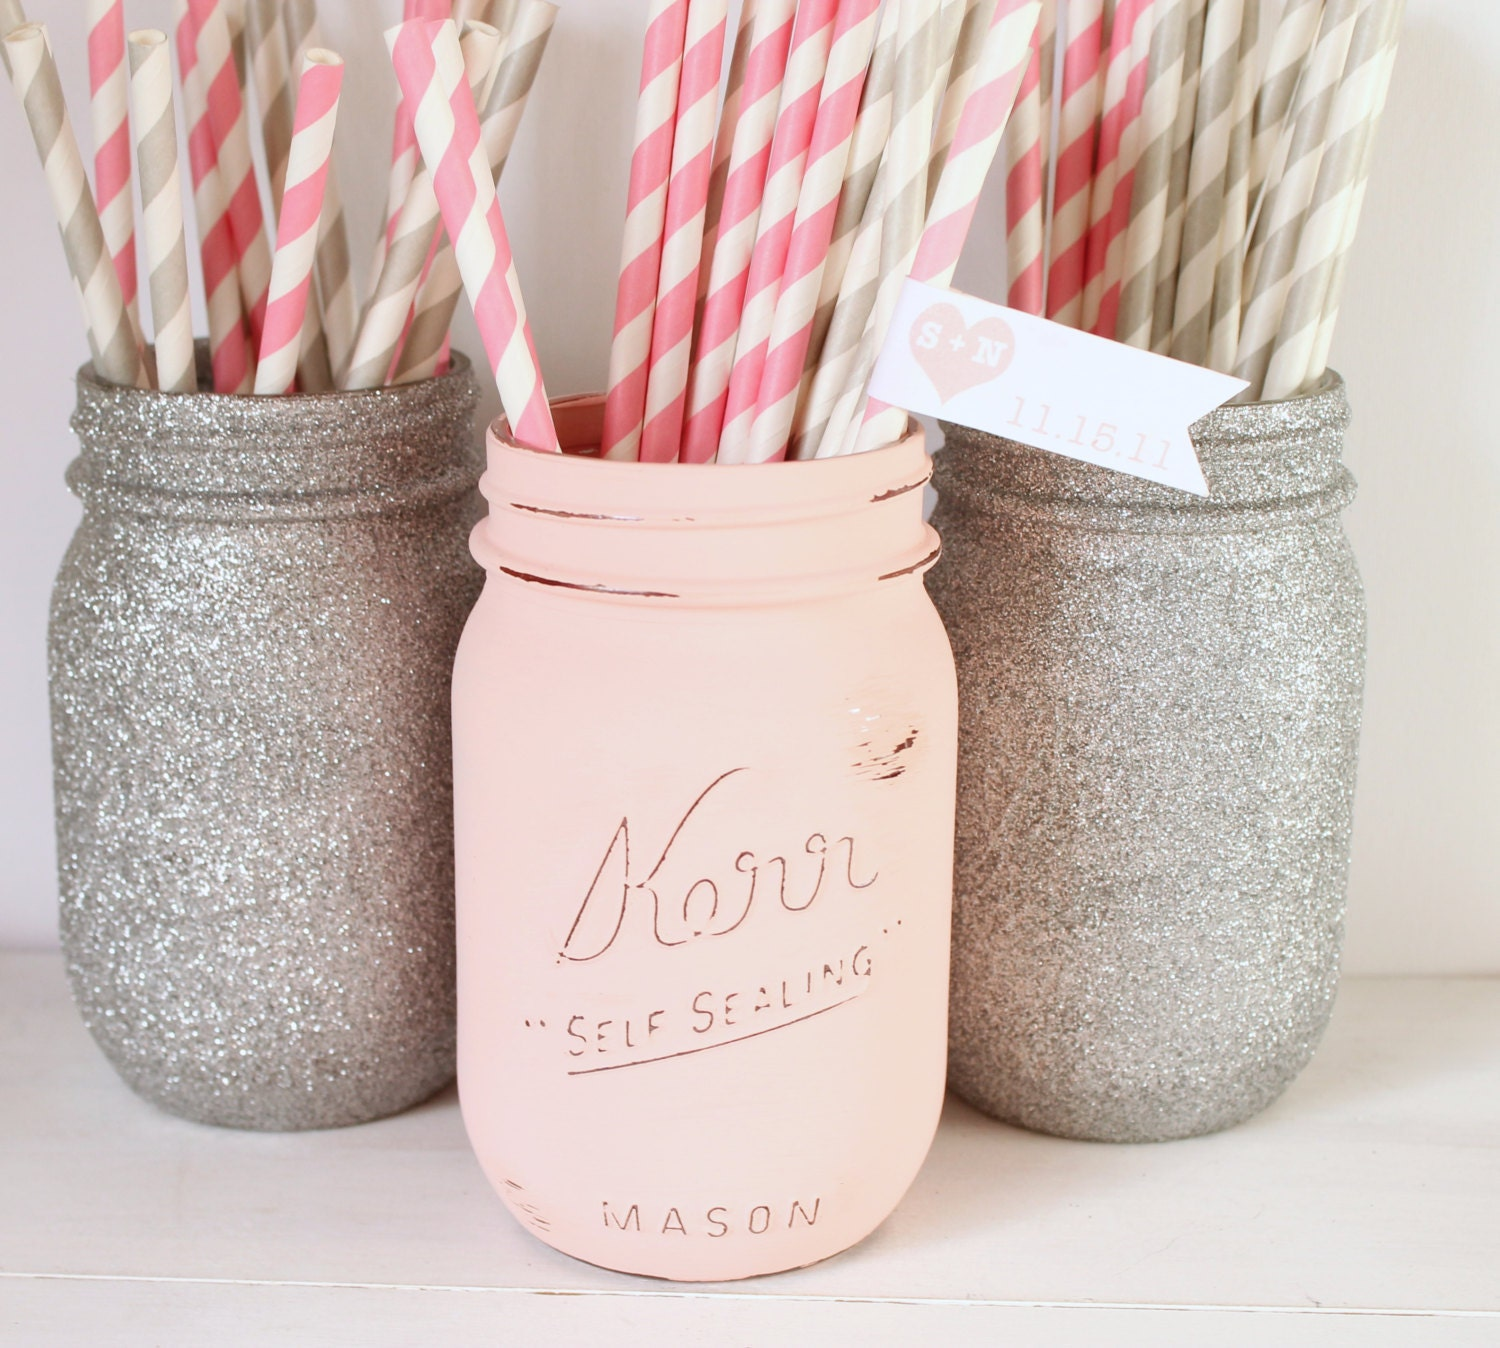 Painted Mason Jar Blush Pink And Silver Glitter